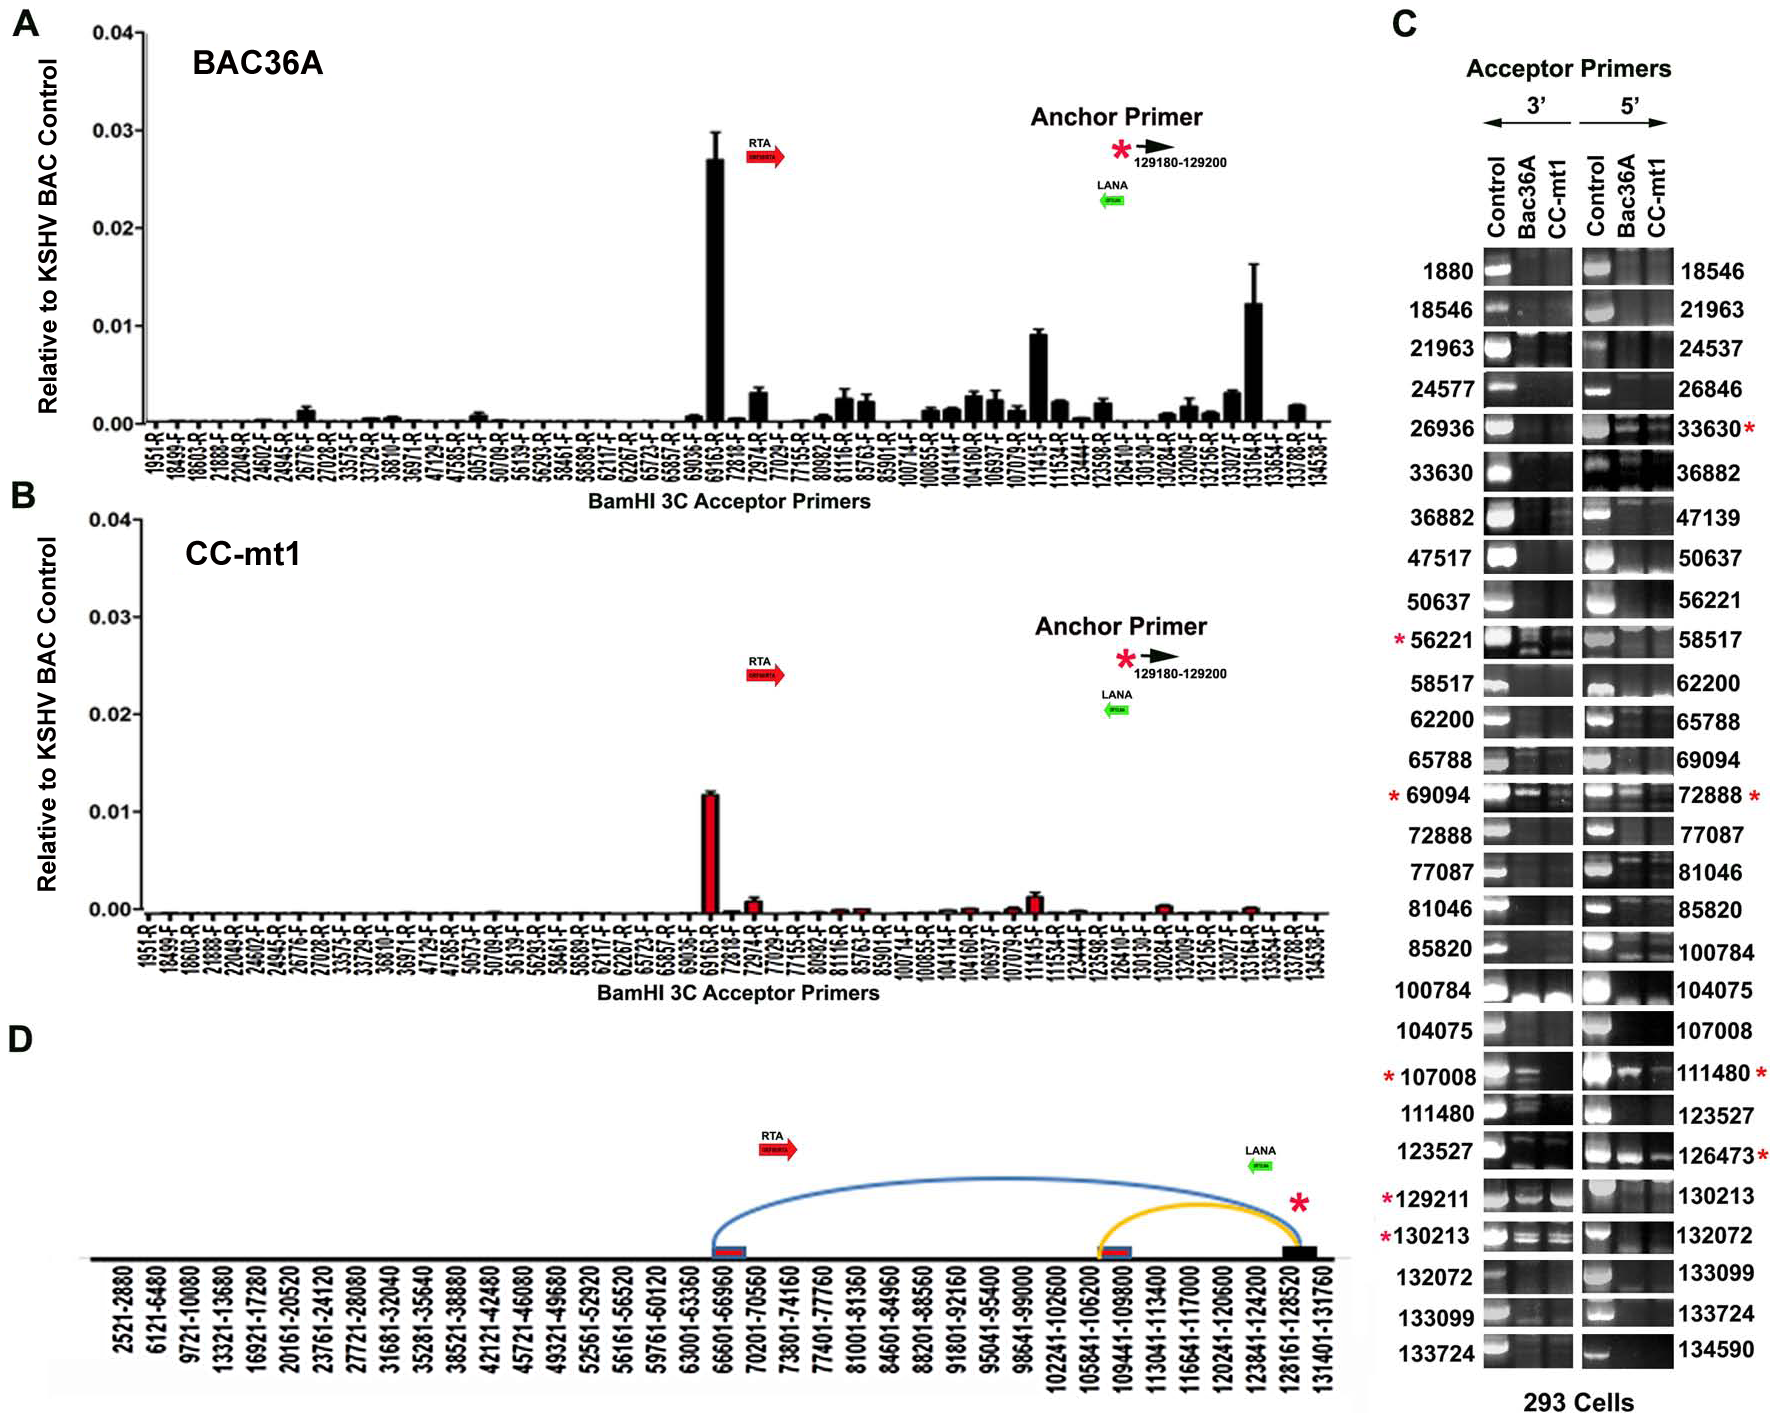 3C analysis of Bac36A-wt and CC-mt1 KSHV genomes in 293 cell pools.